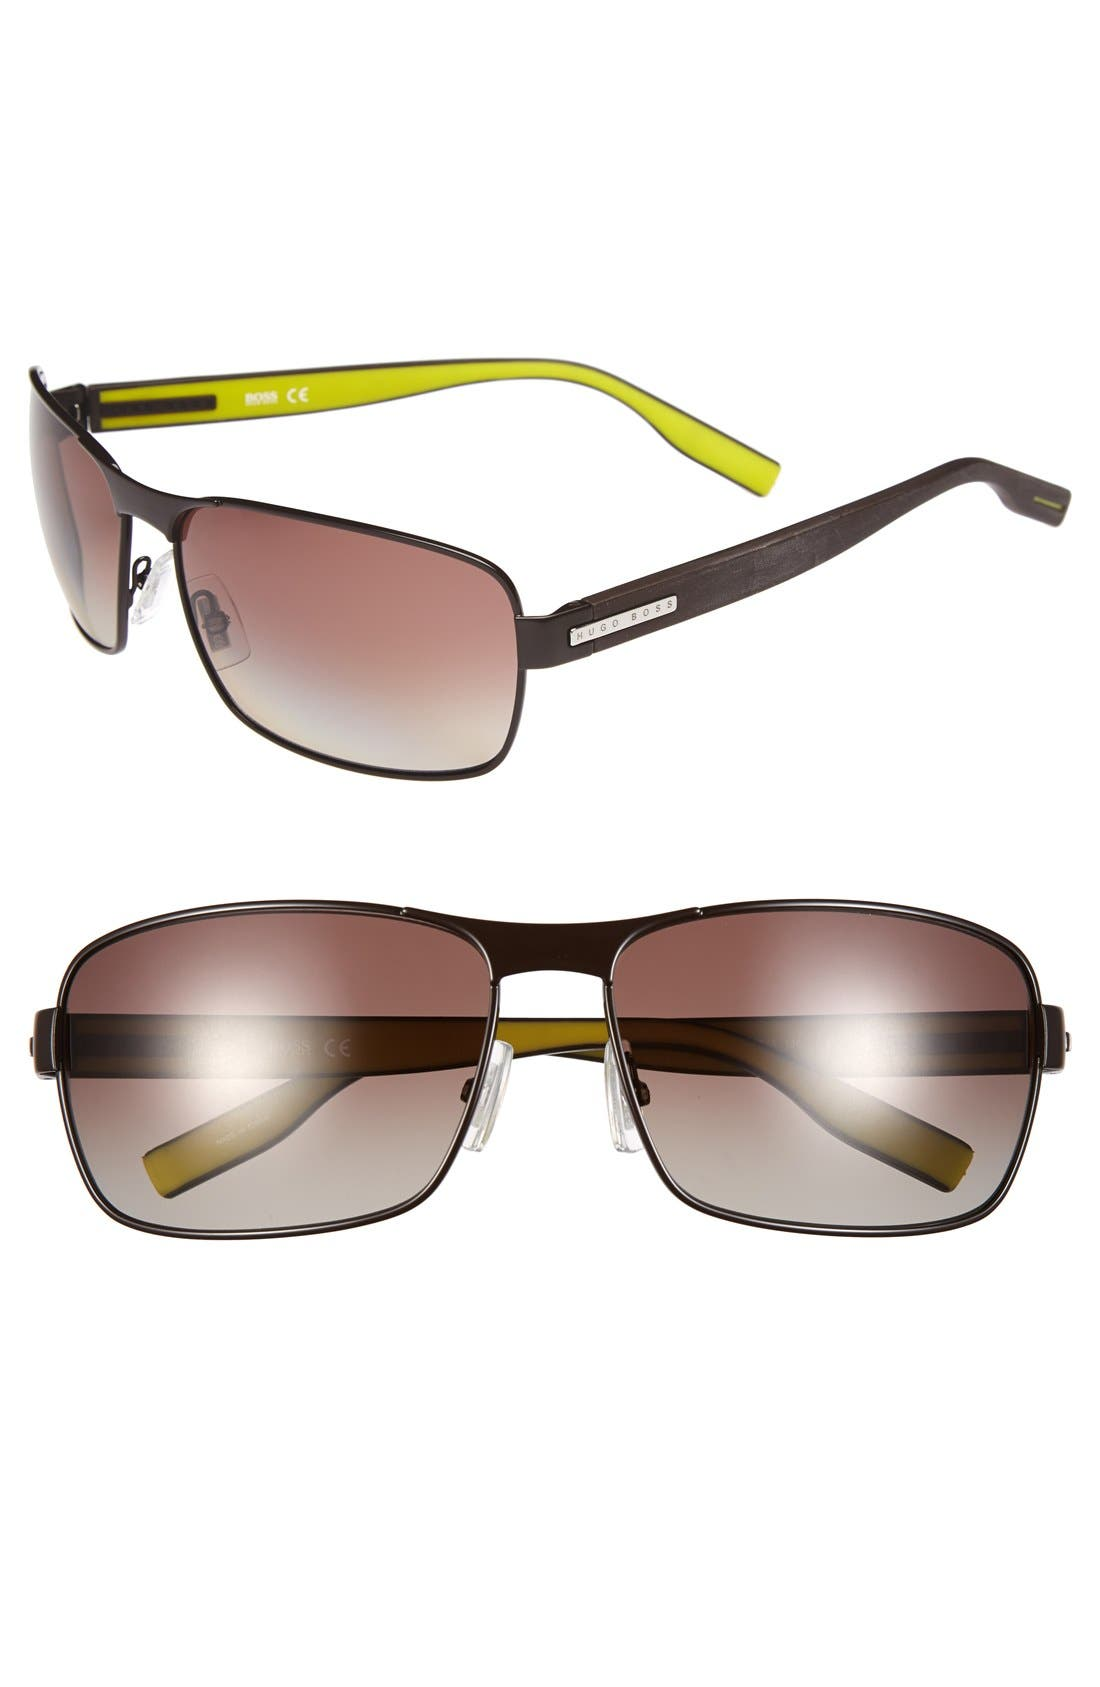 Main Image - BOSS 62mm Polarized Sunglasses